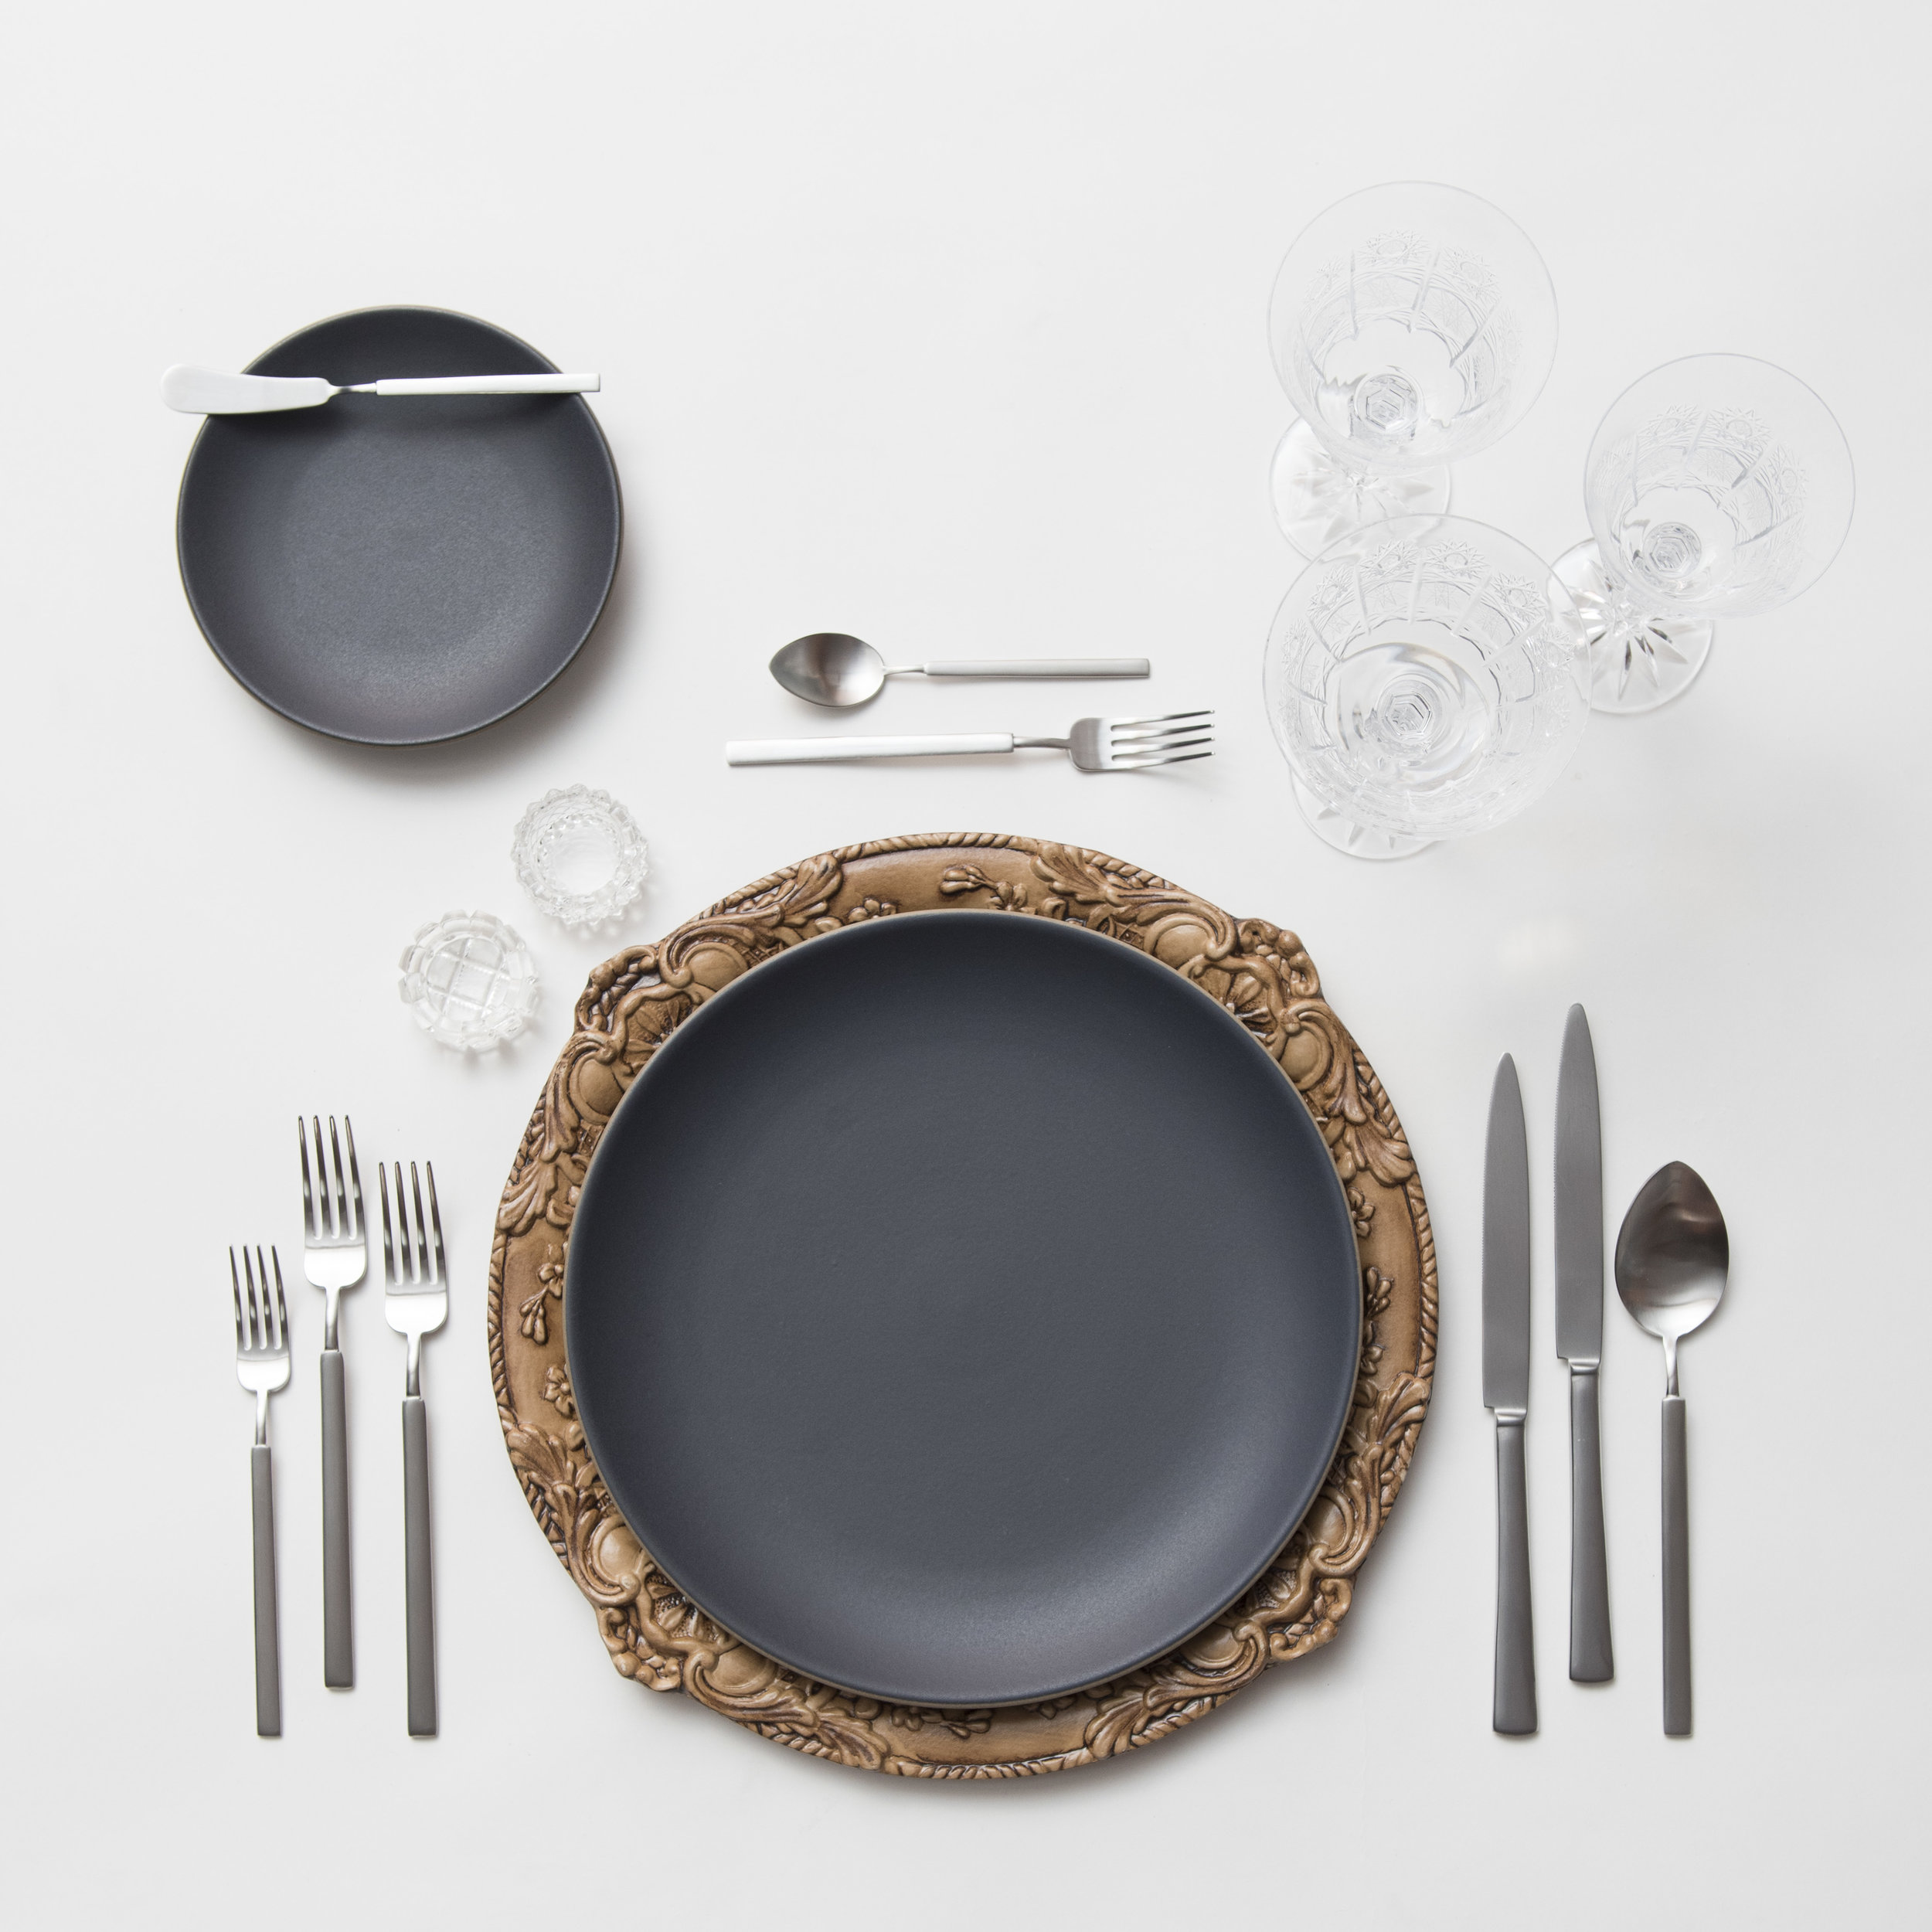 RENT: Verona Chargers in Walnut + Heath Ceramics in Indigo/Slate + Axel Flatware in Matte Silver + Czech Crystal Stemware + Antique Crystal Salt Cellars  SHOP: Verona Chargers in Walnut